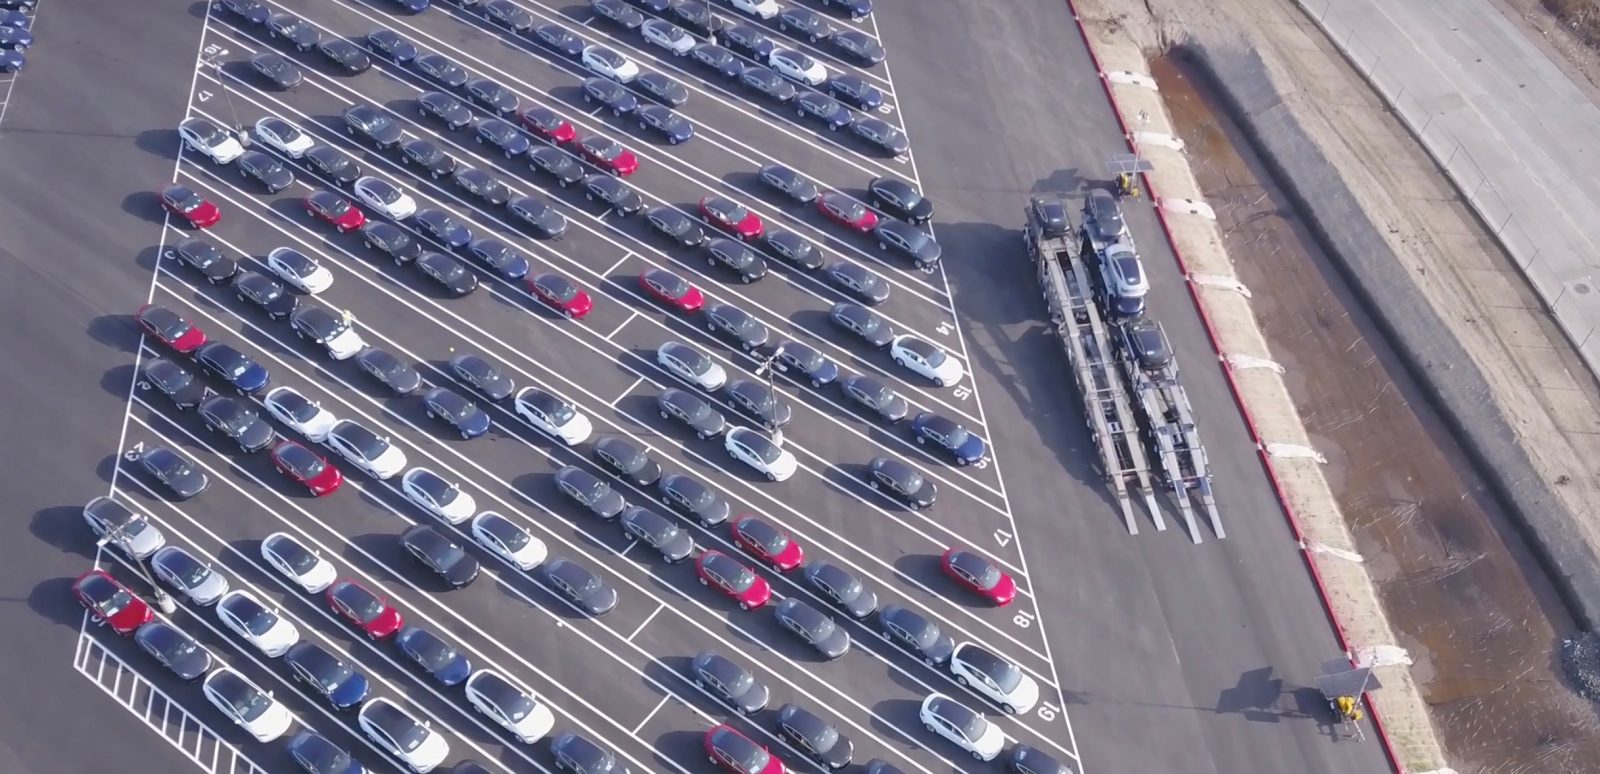 Tesla reaches Model 3 production milestone and record 7,000-car week total production, says Elon Musk